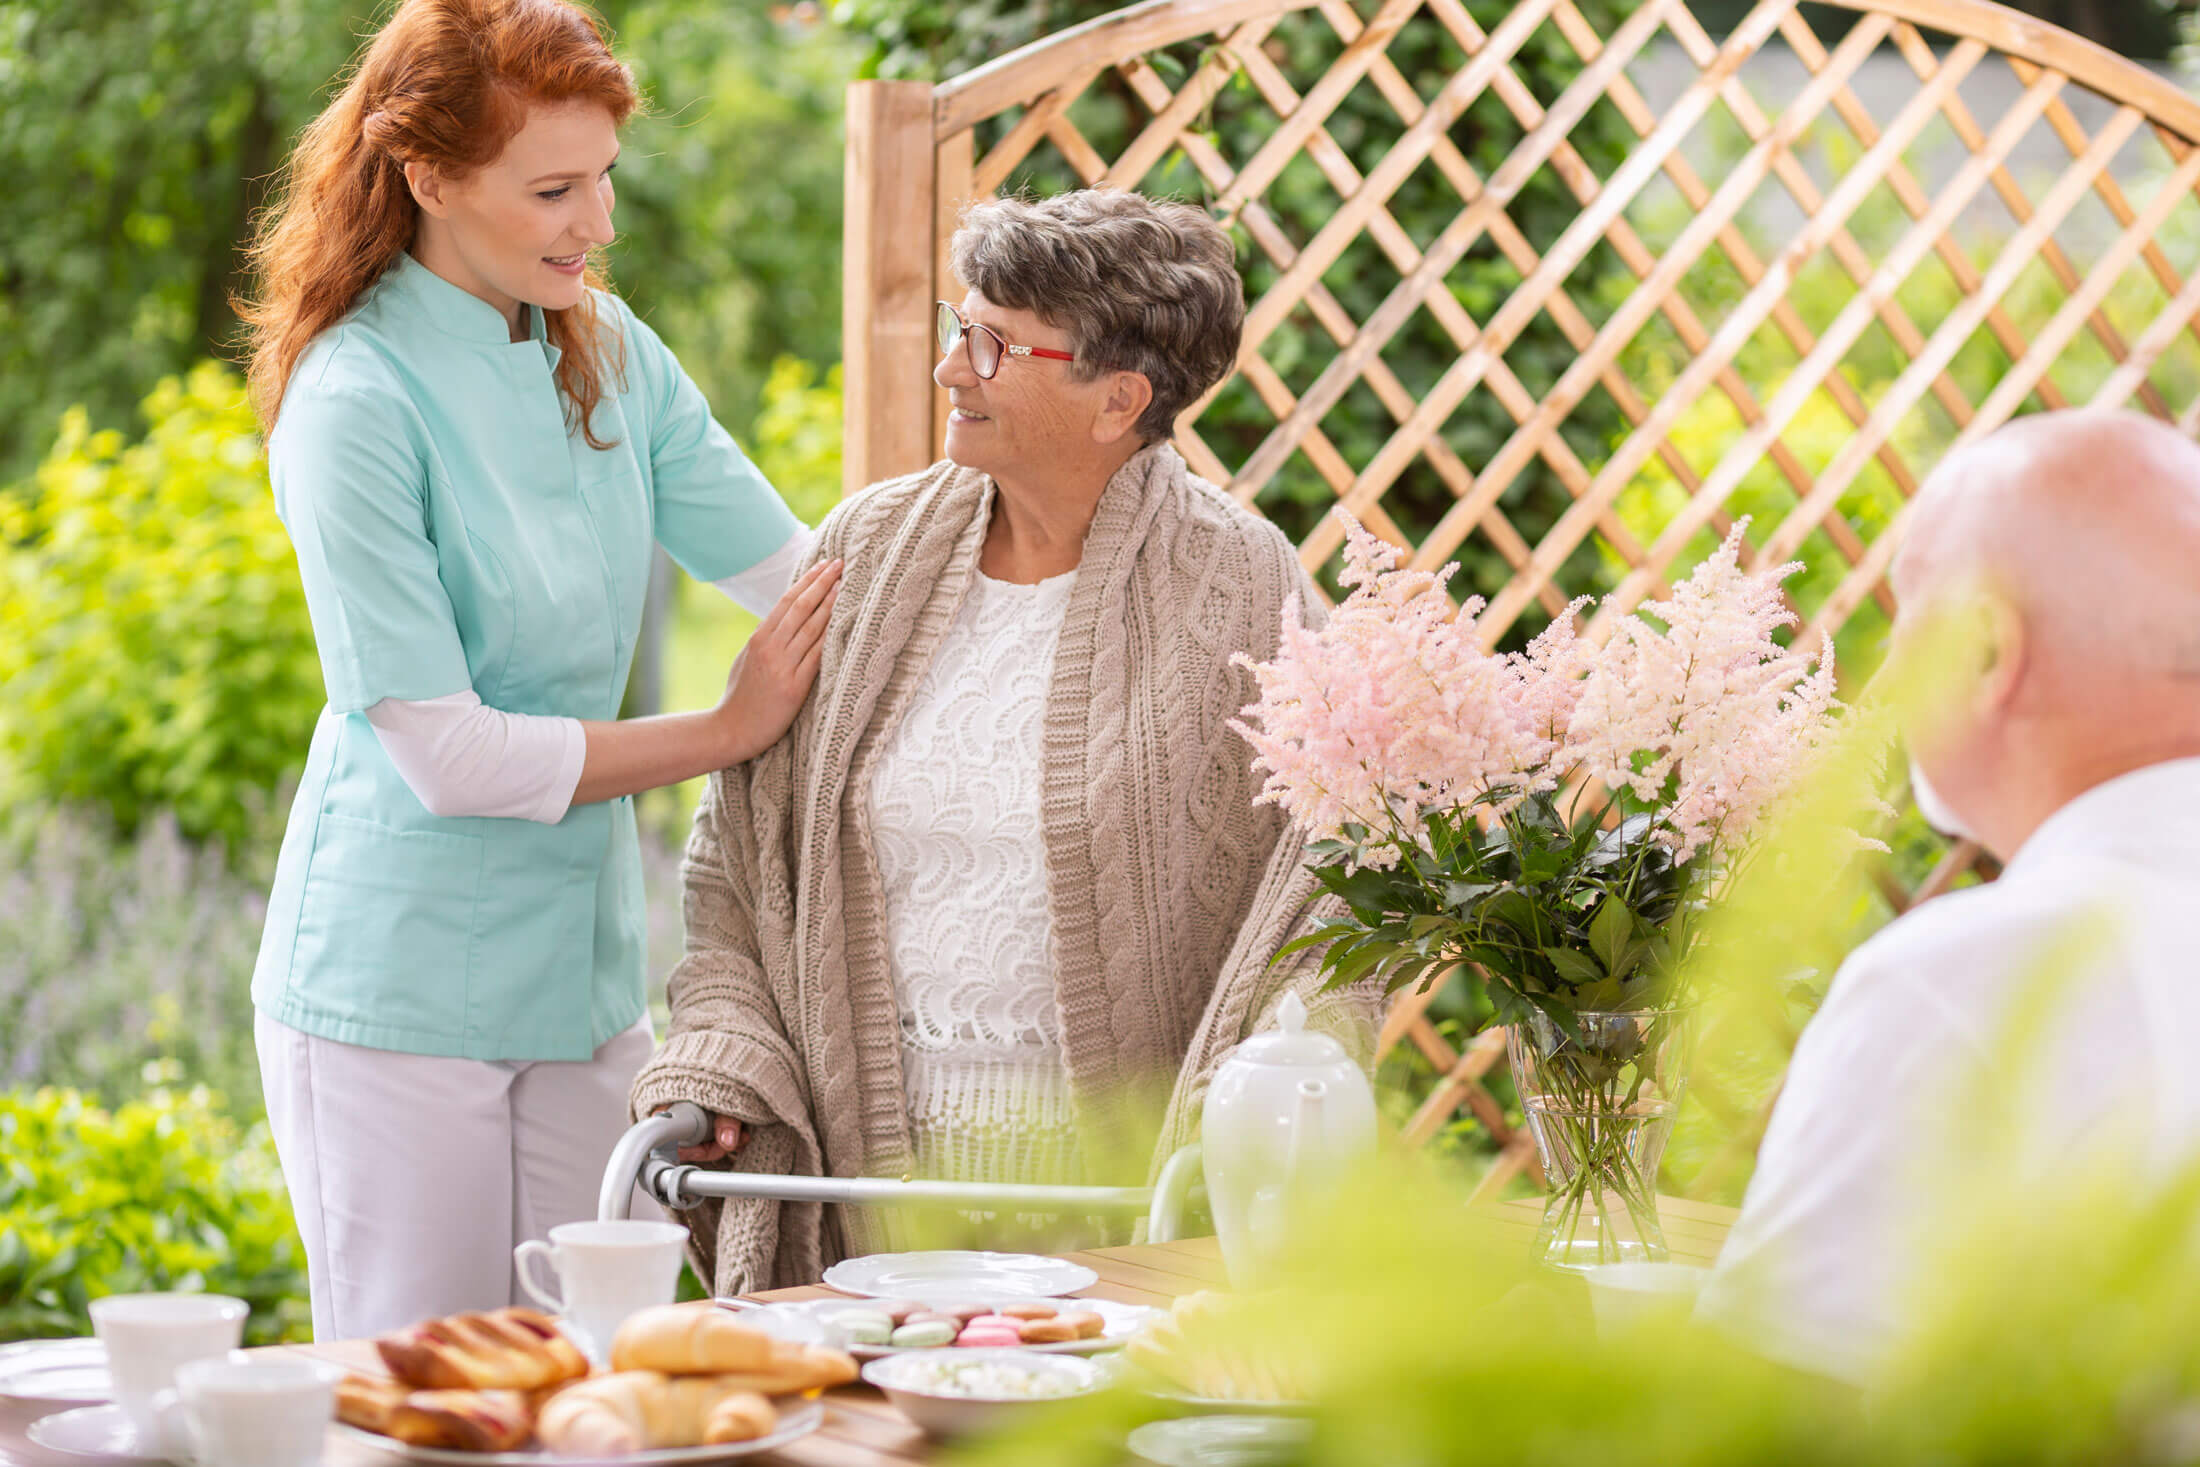 what's the best assisted living place near me?